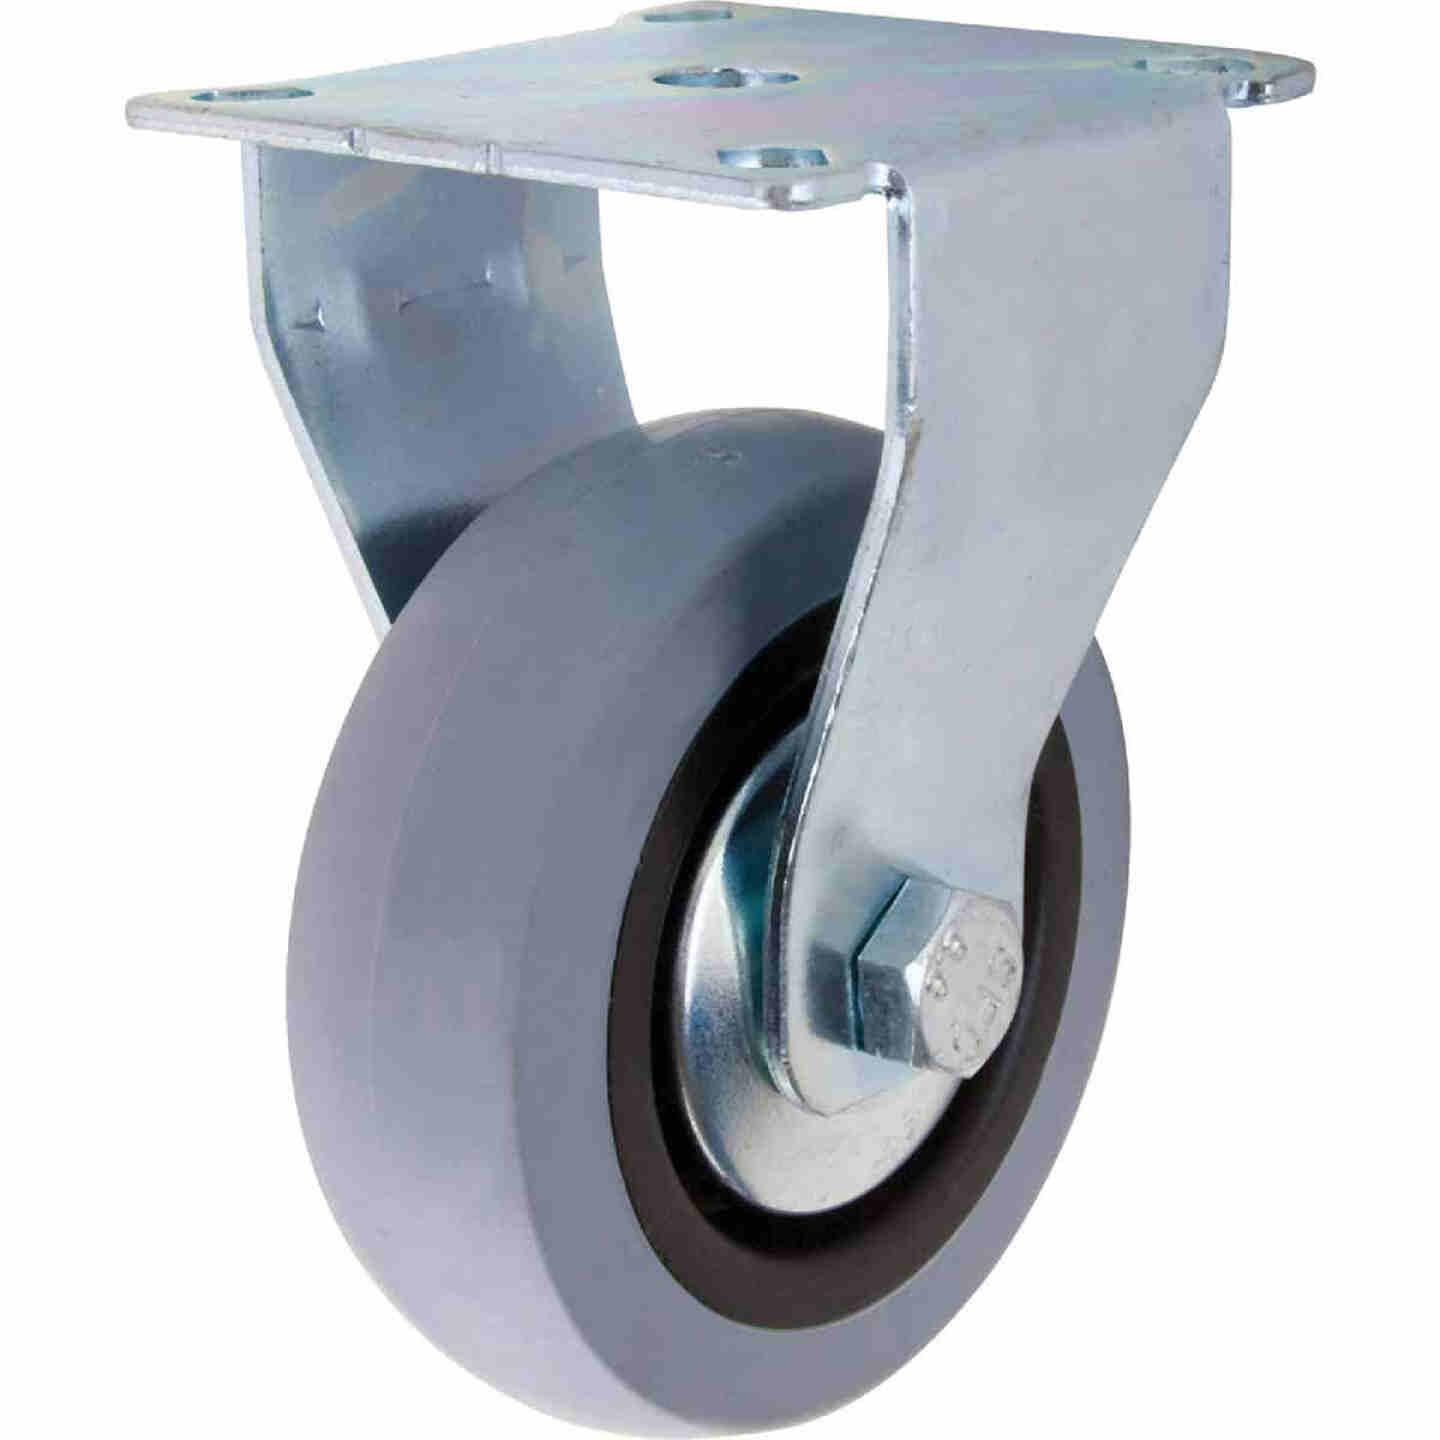 Shepherd 3 In. Thermoplastic Rigid Plate Caster Image 1